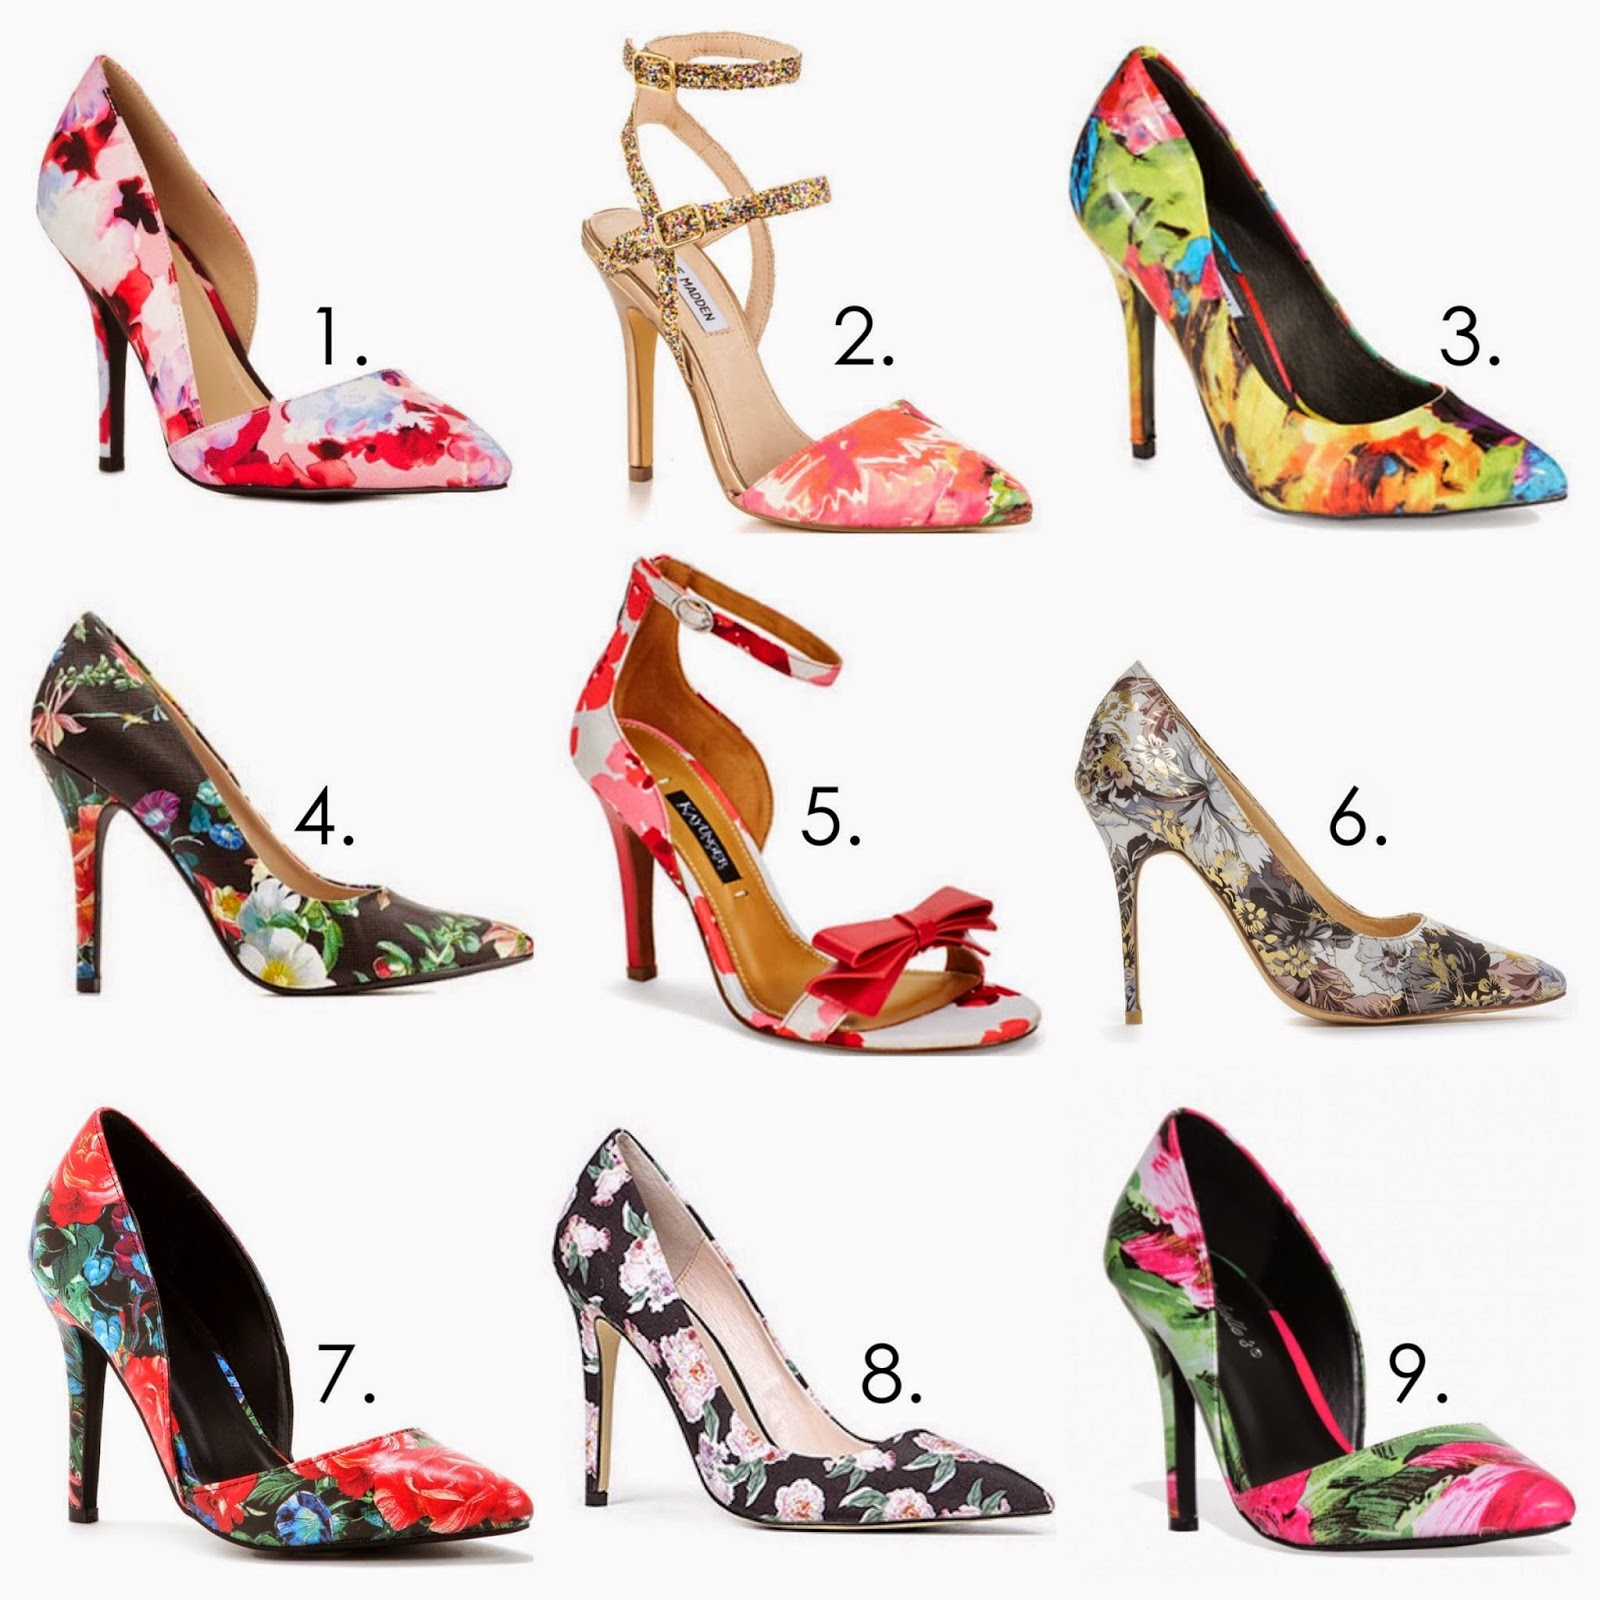 Floral Heels Wishlist, floral pointed heels, pointed flower heels, d'orsay floral shoes, floral accessories, floral shoes, patterned heels, charlotte russe floral heels, rose shoes, rose print shoes, floral strappy heels